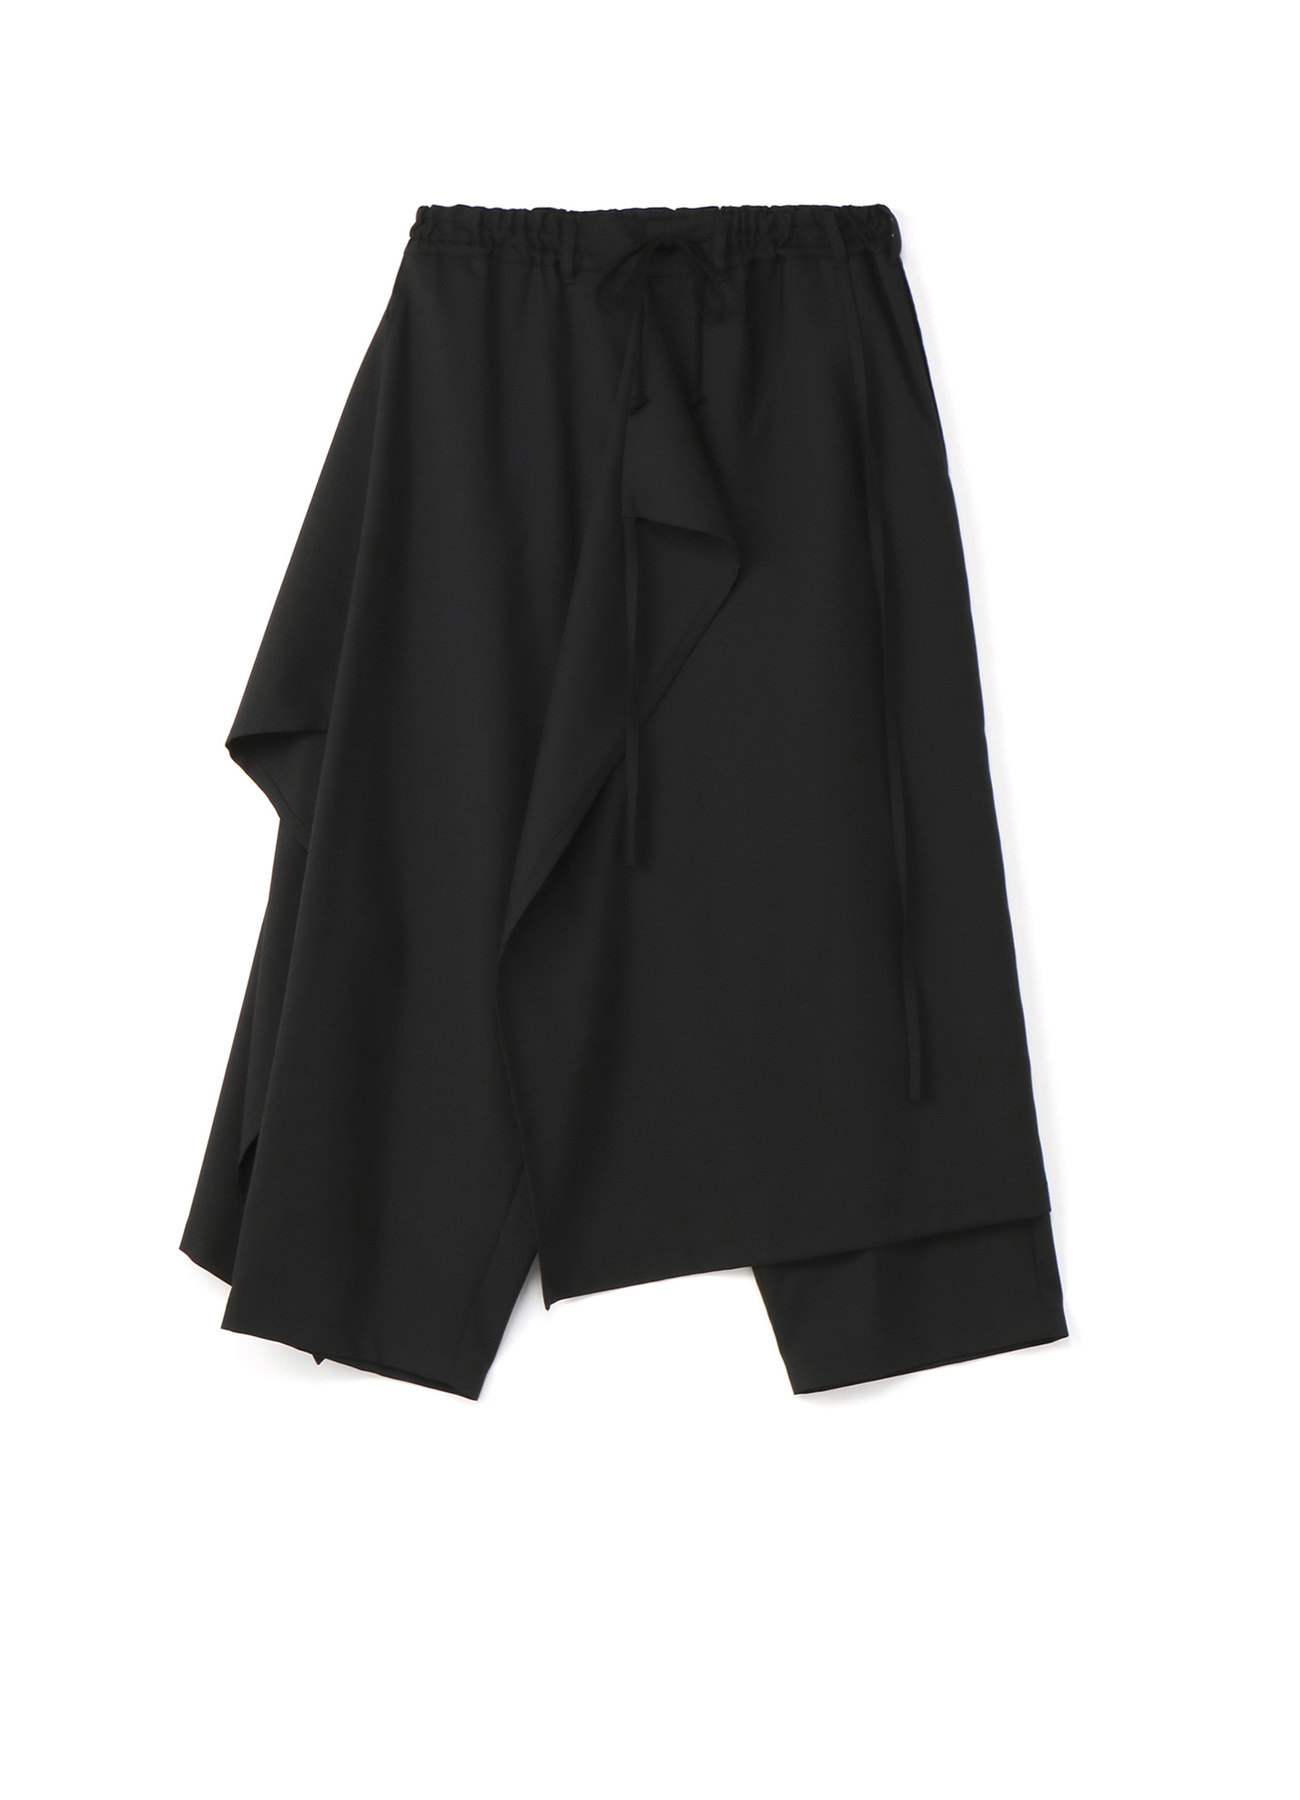 T/W? gaberdine Three Way Skirt Pants